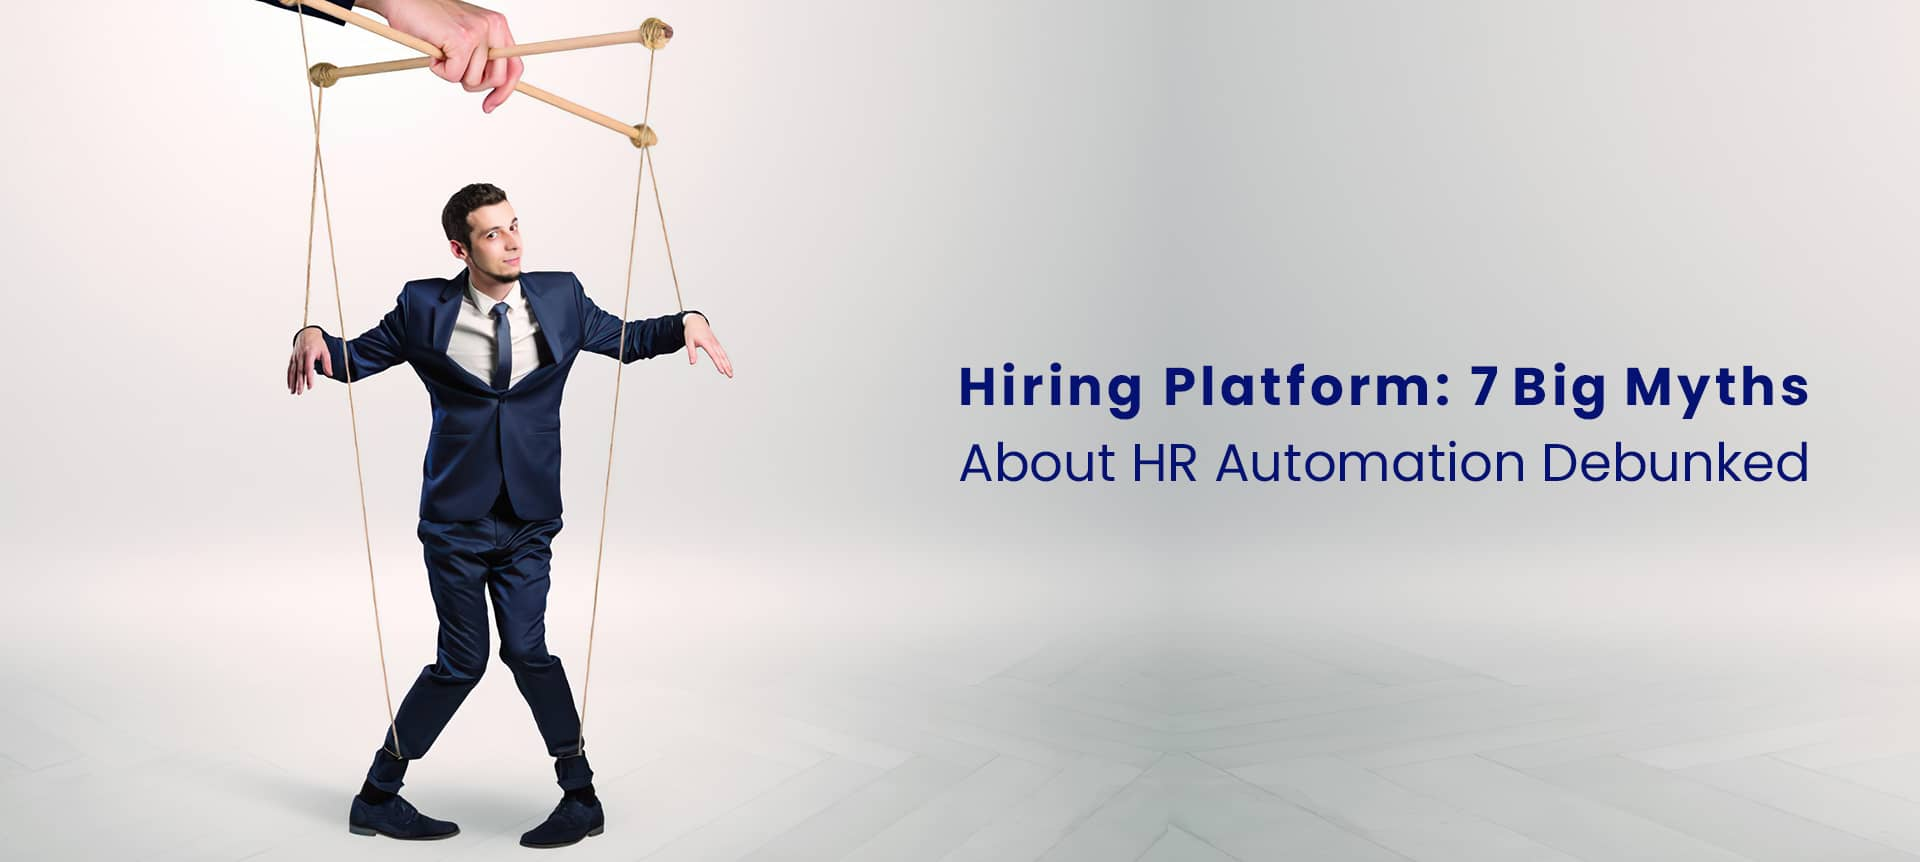 A recruiter in a suit, debunking myths about HR automation in a hiring platform.